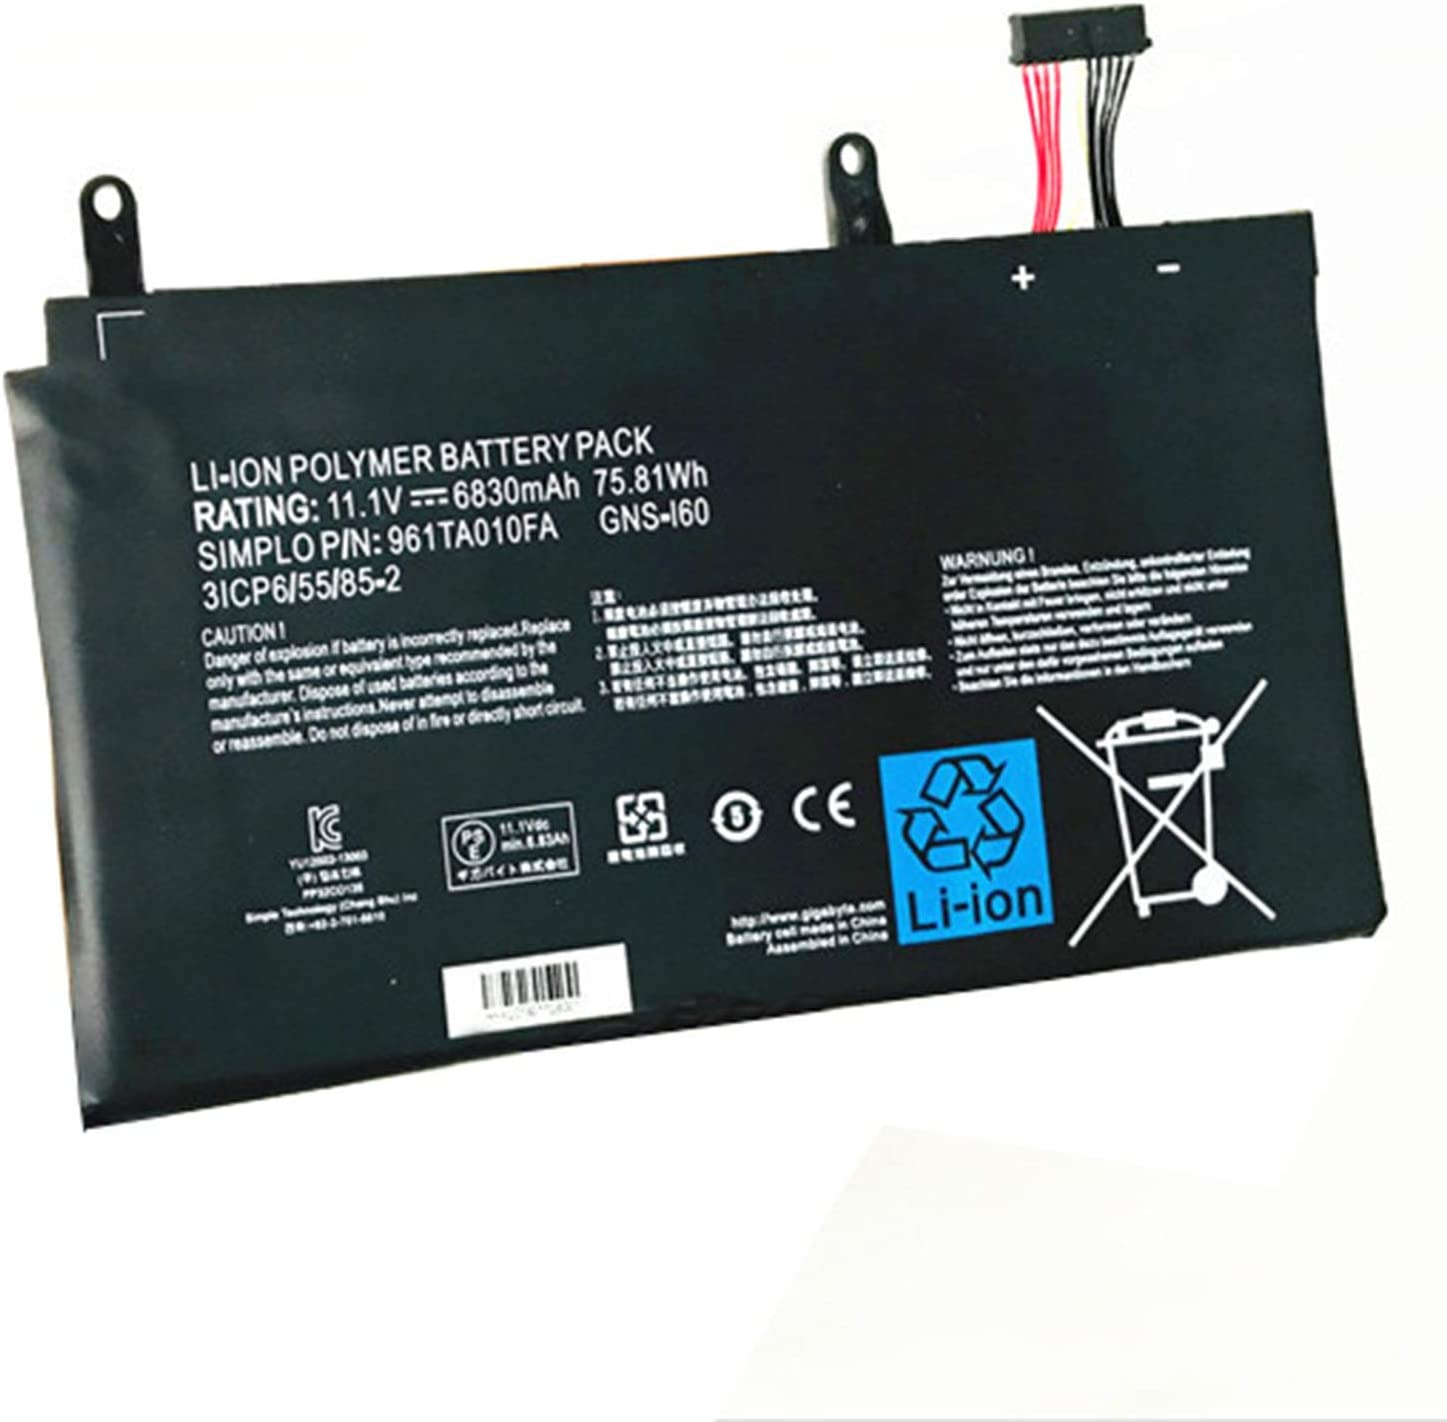 Dentsing 11.1V 75.81Wh/6830mAh 4-Cell GNS-I60 Laptop Battery Compatible with GIGABYTEP35K P35K-965-4702S P37X P57X V6 Gateway 961TA010FA Series Notebook GNS-160